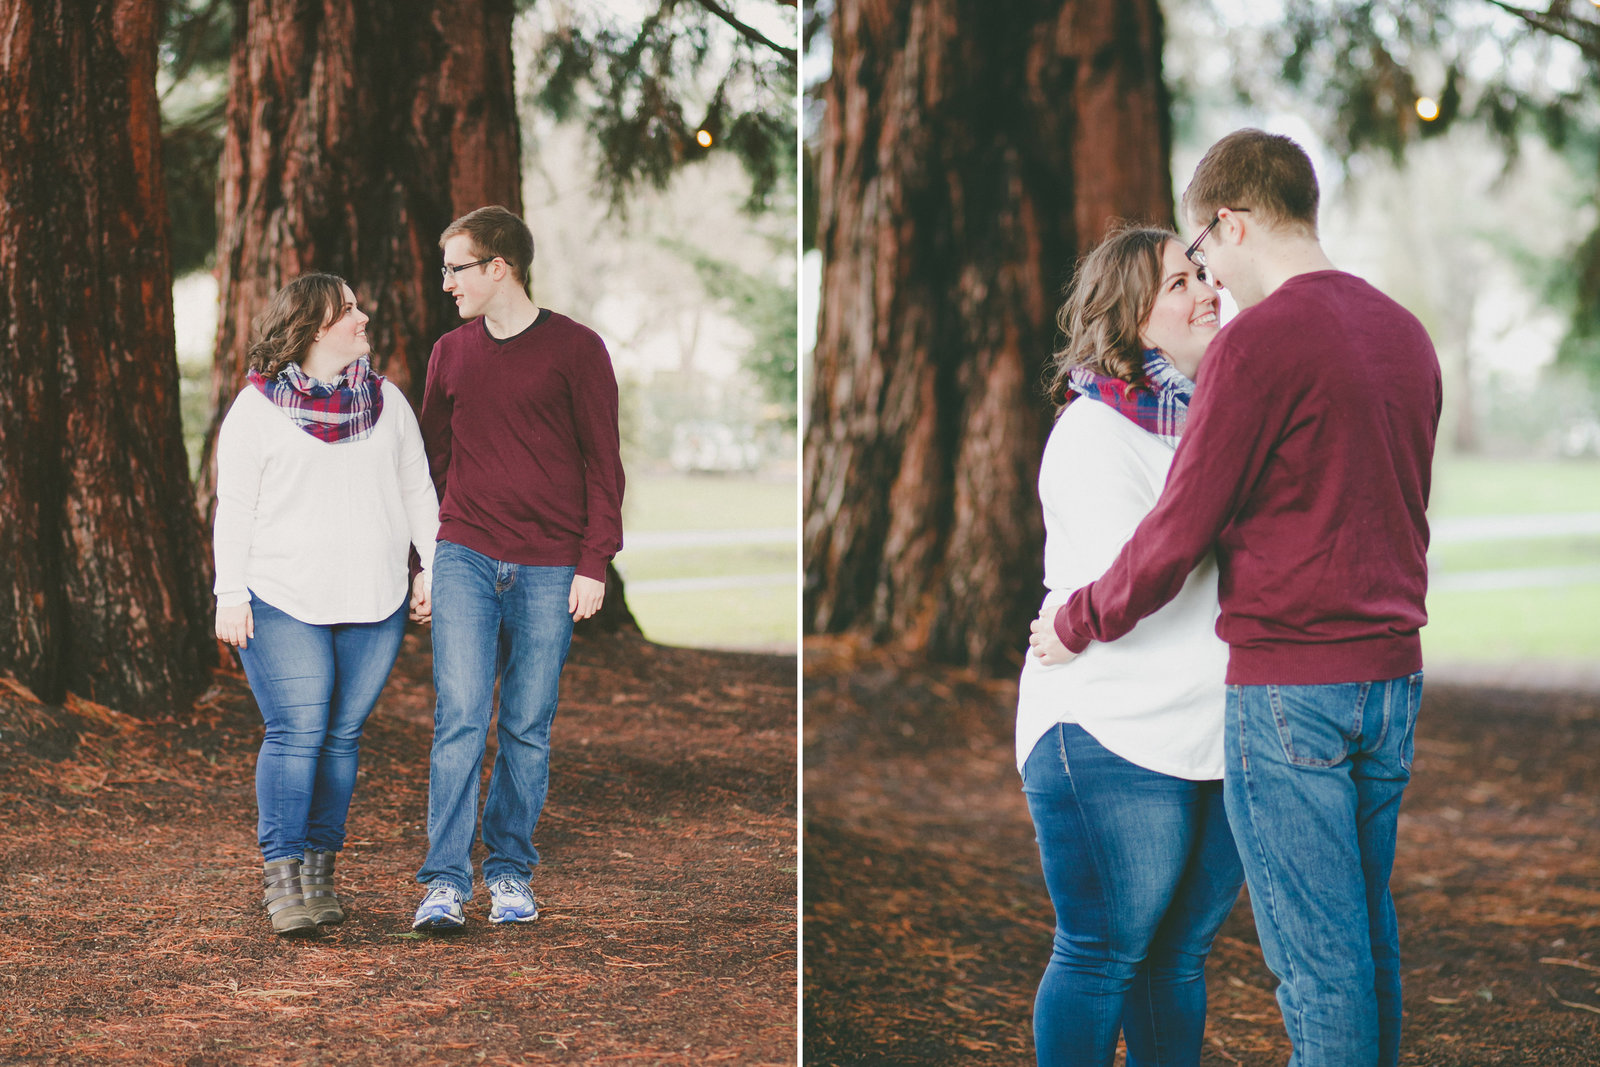 Outdoor portland engagement photos | Susie Moreno Photography